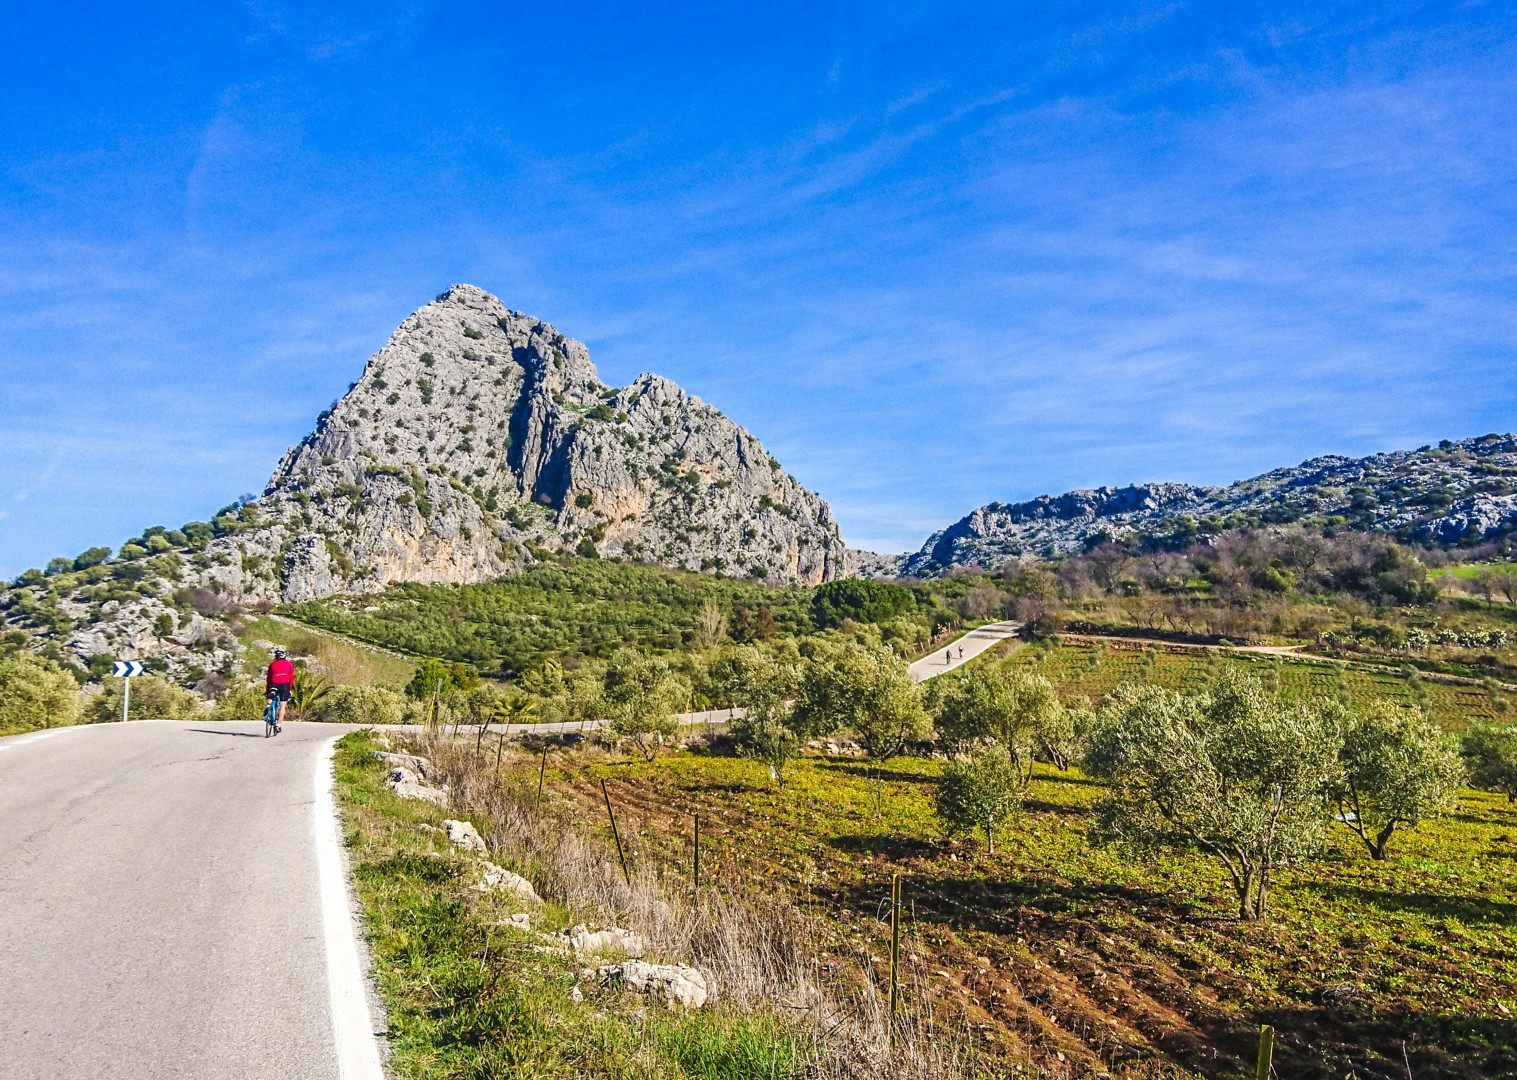 limestone-mountain-backgrounds-road-cycling-tour-spain.jpg - Southern Spain - Andalucia - Los Pueblos Blancos - Guided Road Cycling Holiday - Road Cycling